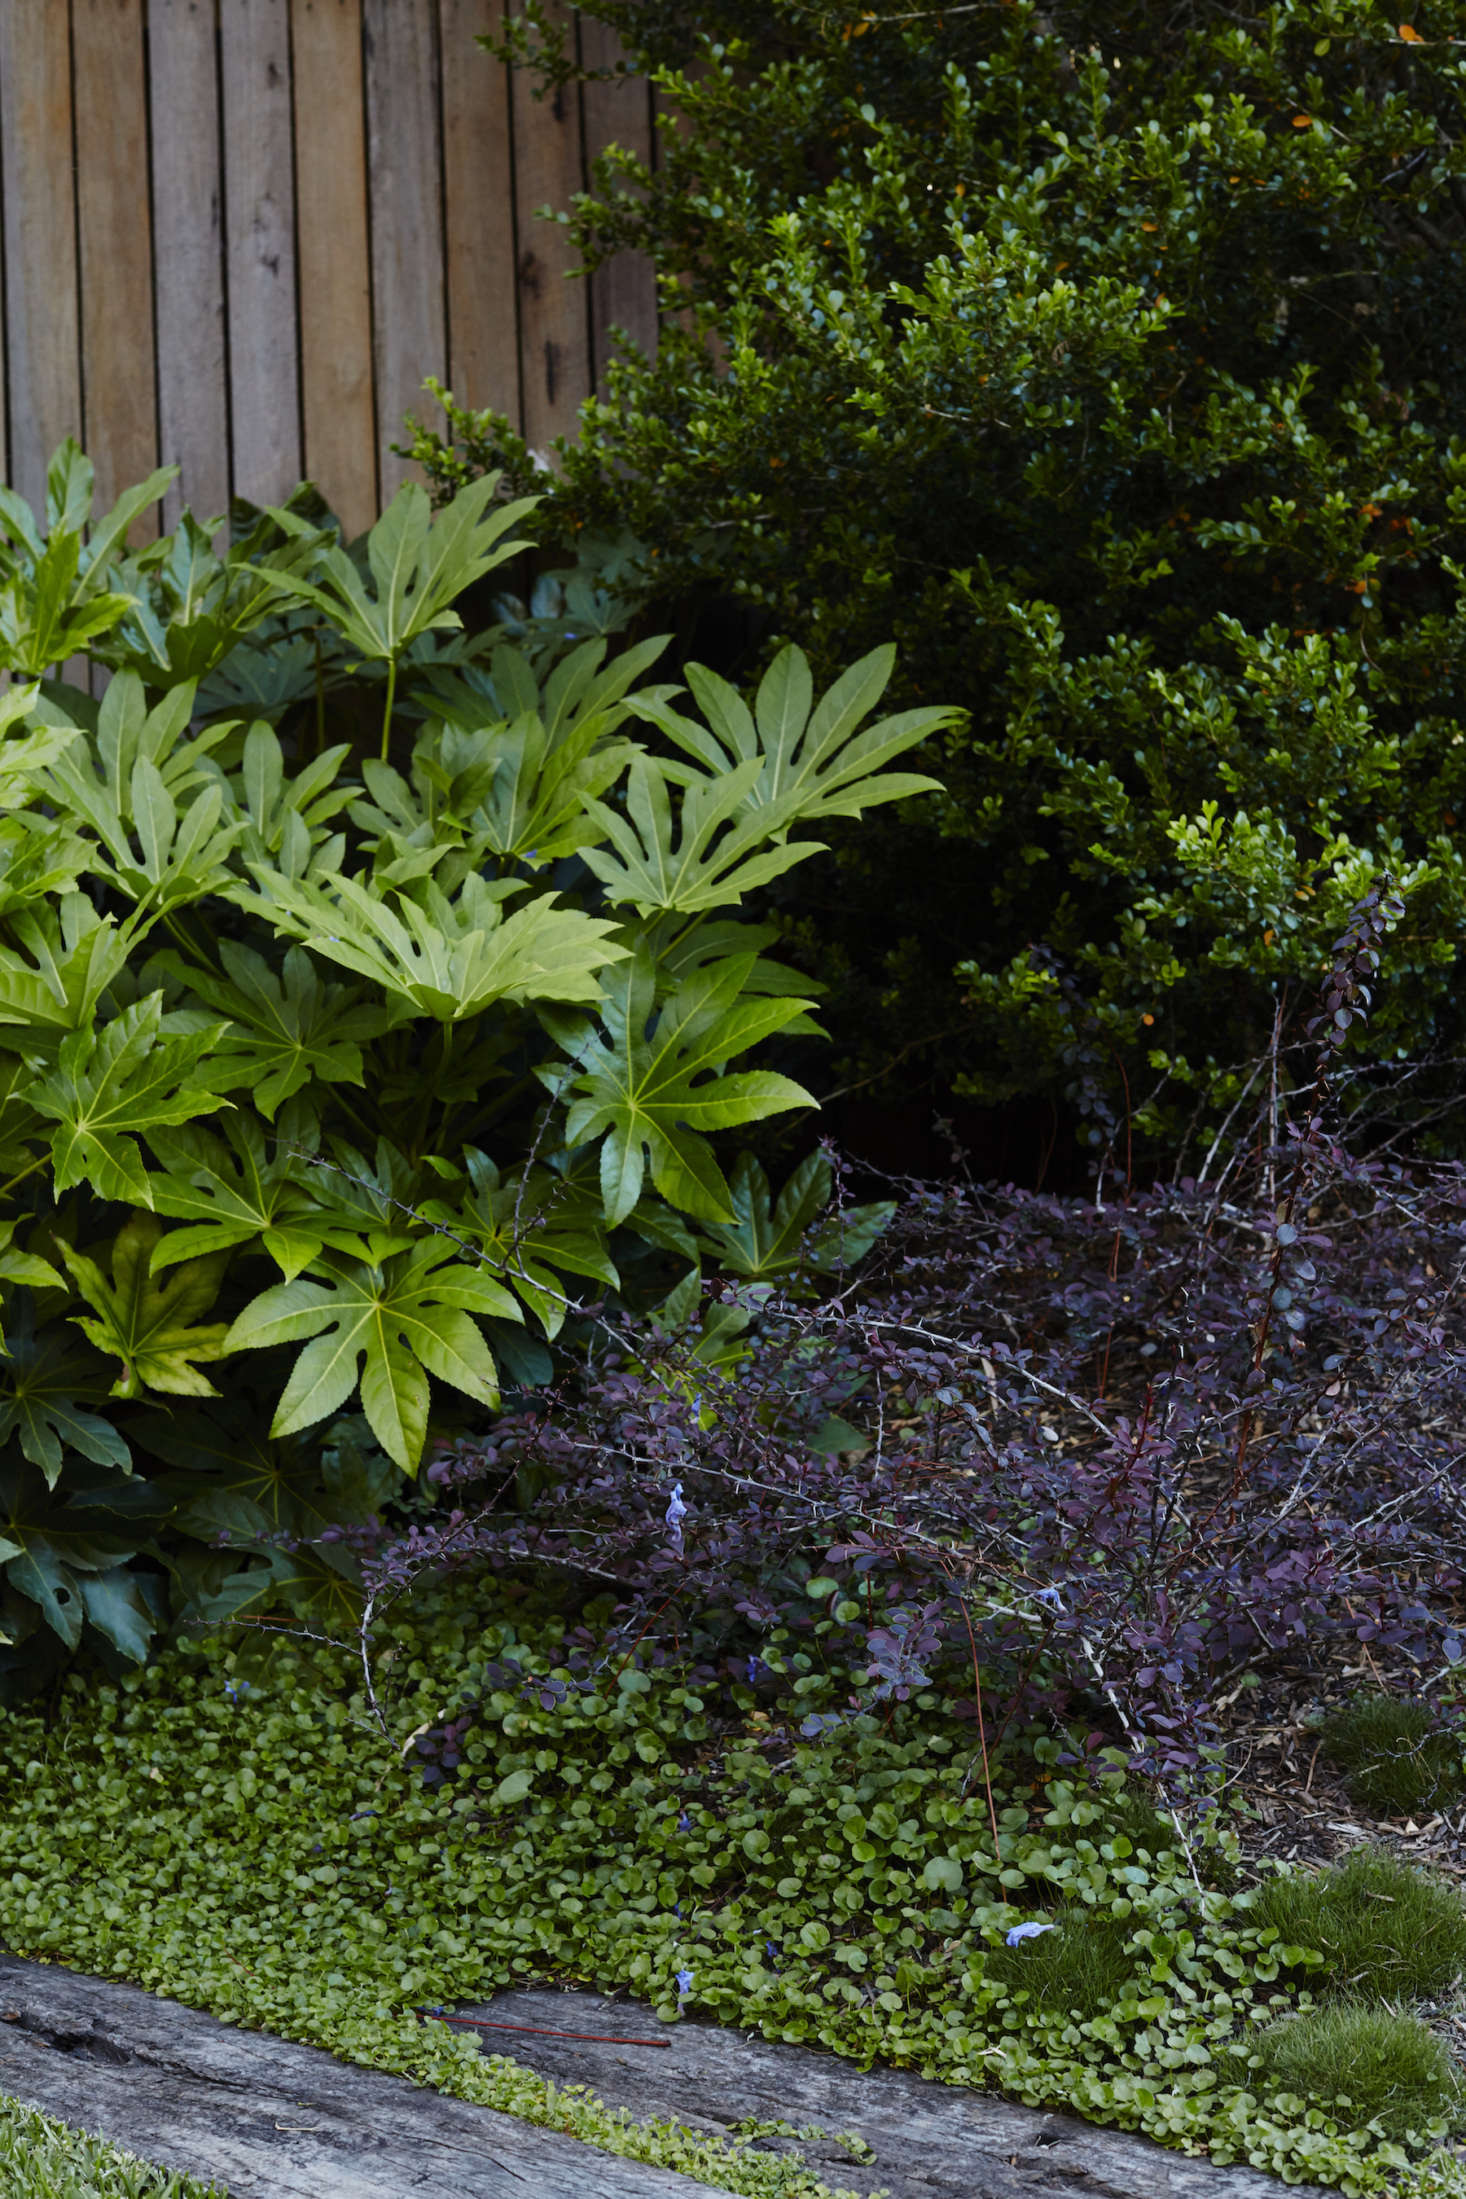 A large Fatsia paper plant, a Loropetalum purple shrub, and Dichondra serving as ground cover grow over the railroad ties on the left edge of the garden.